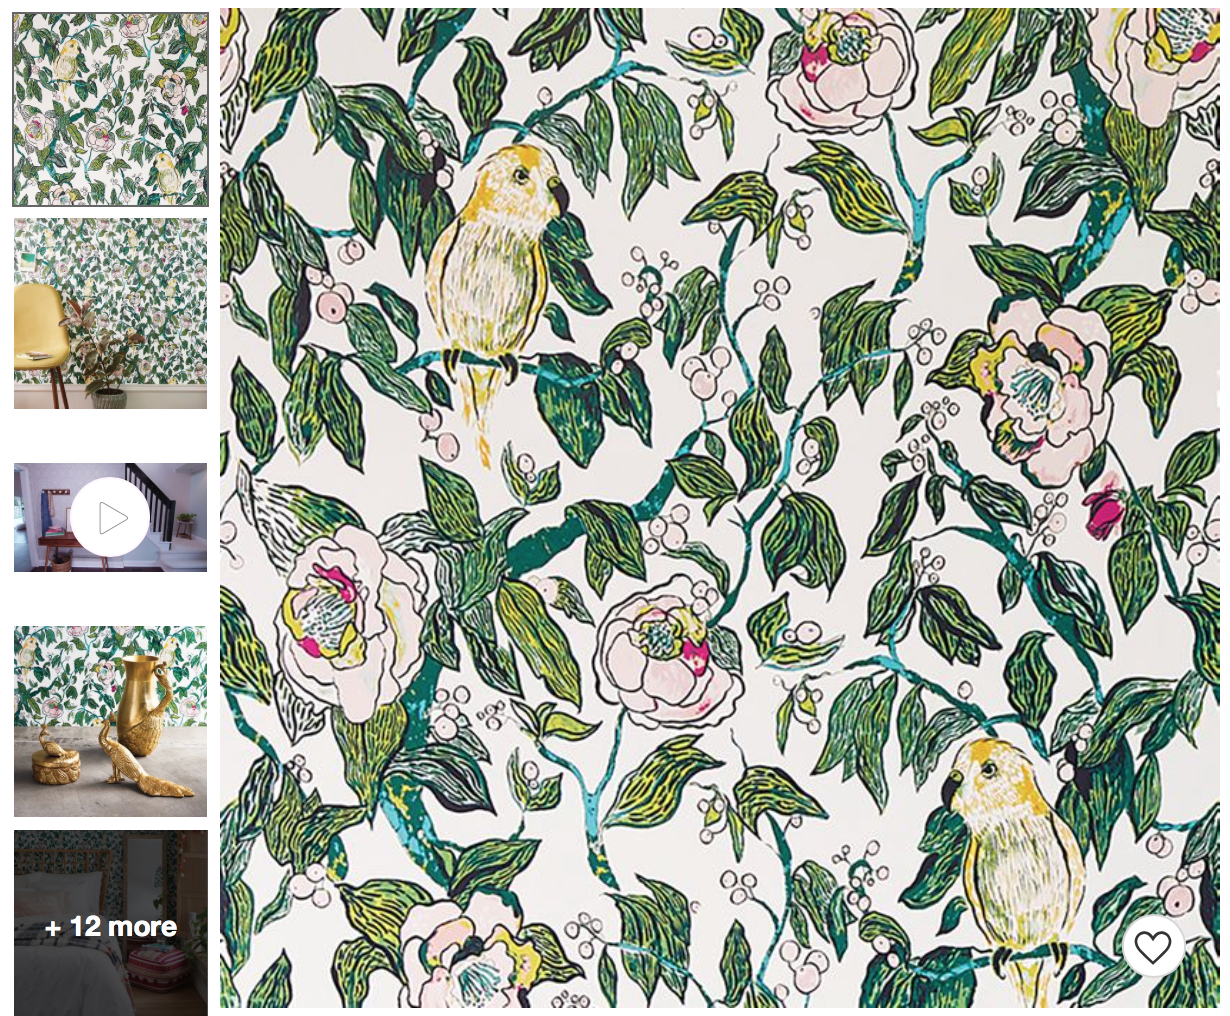 Canary Floral Peel Stick Wallpaper Opalhouse In 2020 Peel And Stick Wallpaper Wallpaper Floral Wallpaper